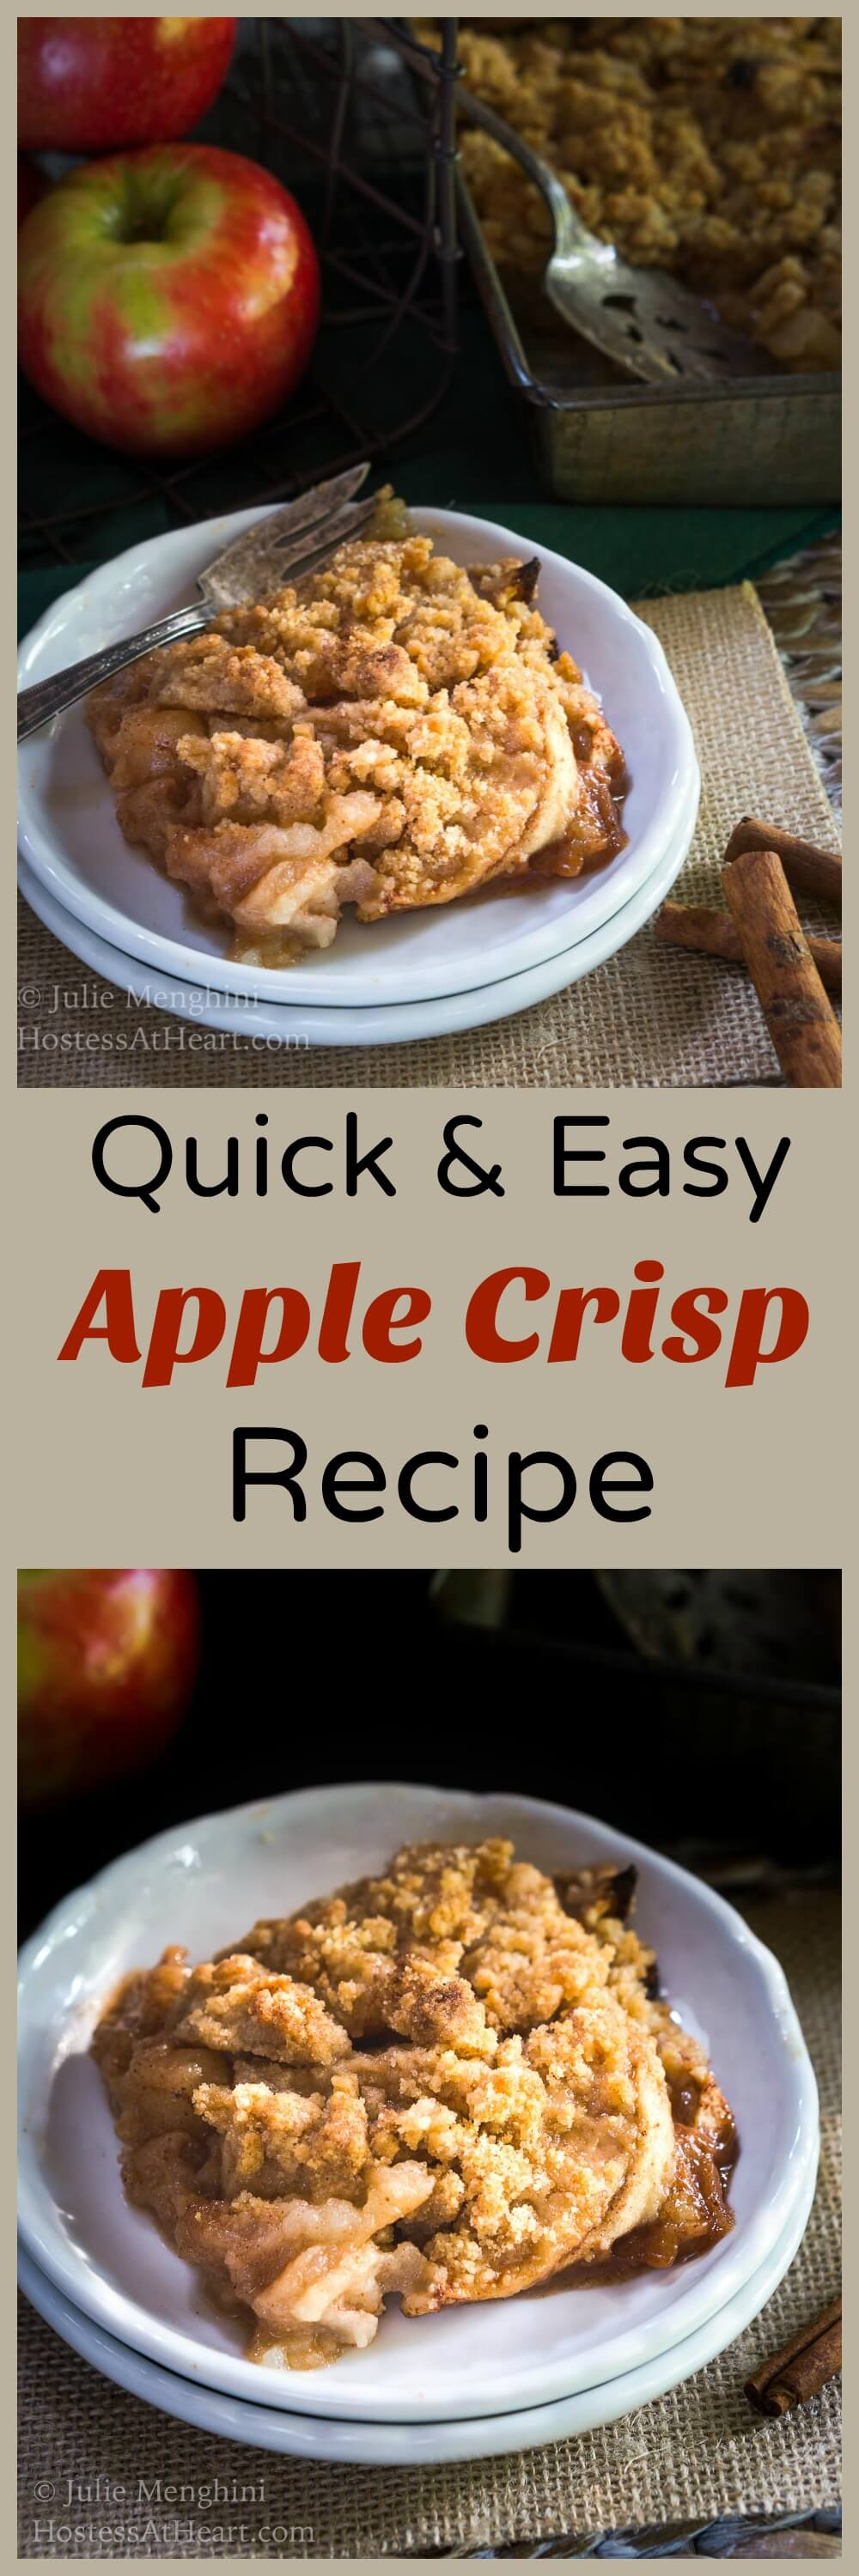 I'll take this Quick and Easy Apple Crisp dessert over cake anytime. It's simple to put together and the perfect treat especially with a dollop of frozen yogurt. | HostessAtHeart.com